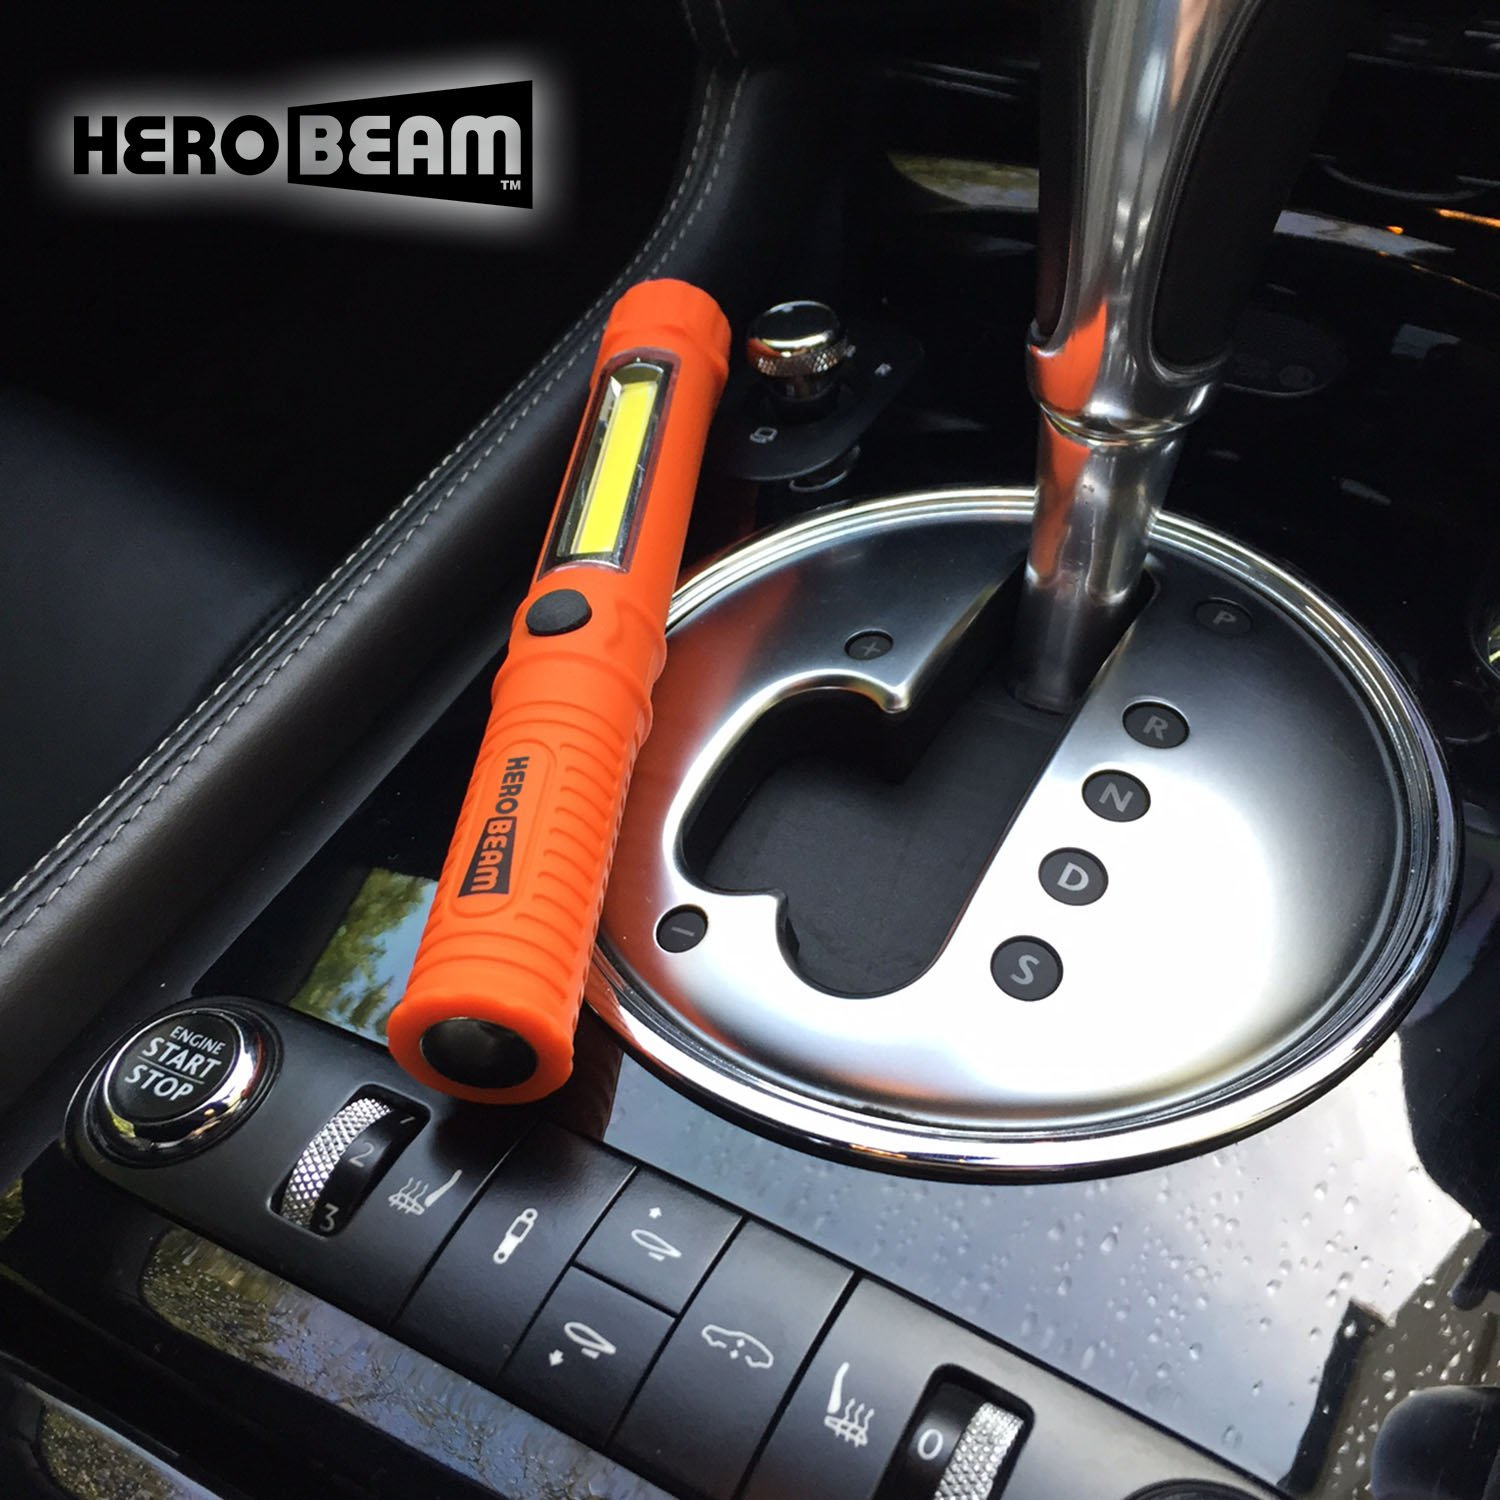 HeroBeam A Glovebox Essential for Auto Emergencies at Night - Super Bright LED Flashlight//Worklight with Attachment Magnet and Clothing Clip SINGLE PACK Car Emergency Flashlight